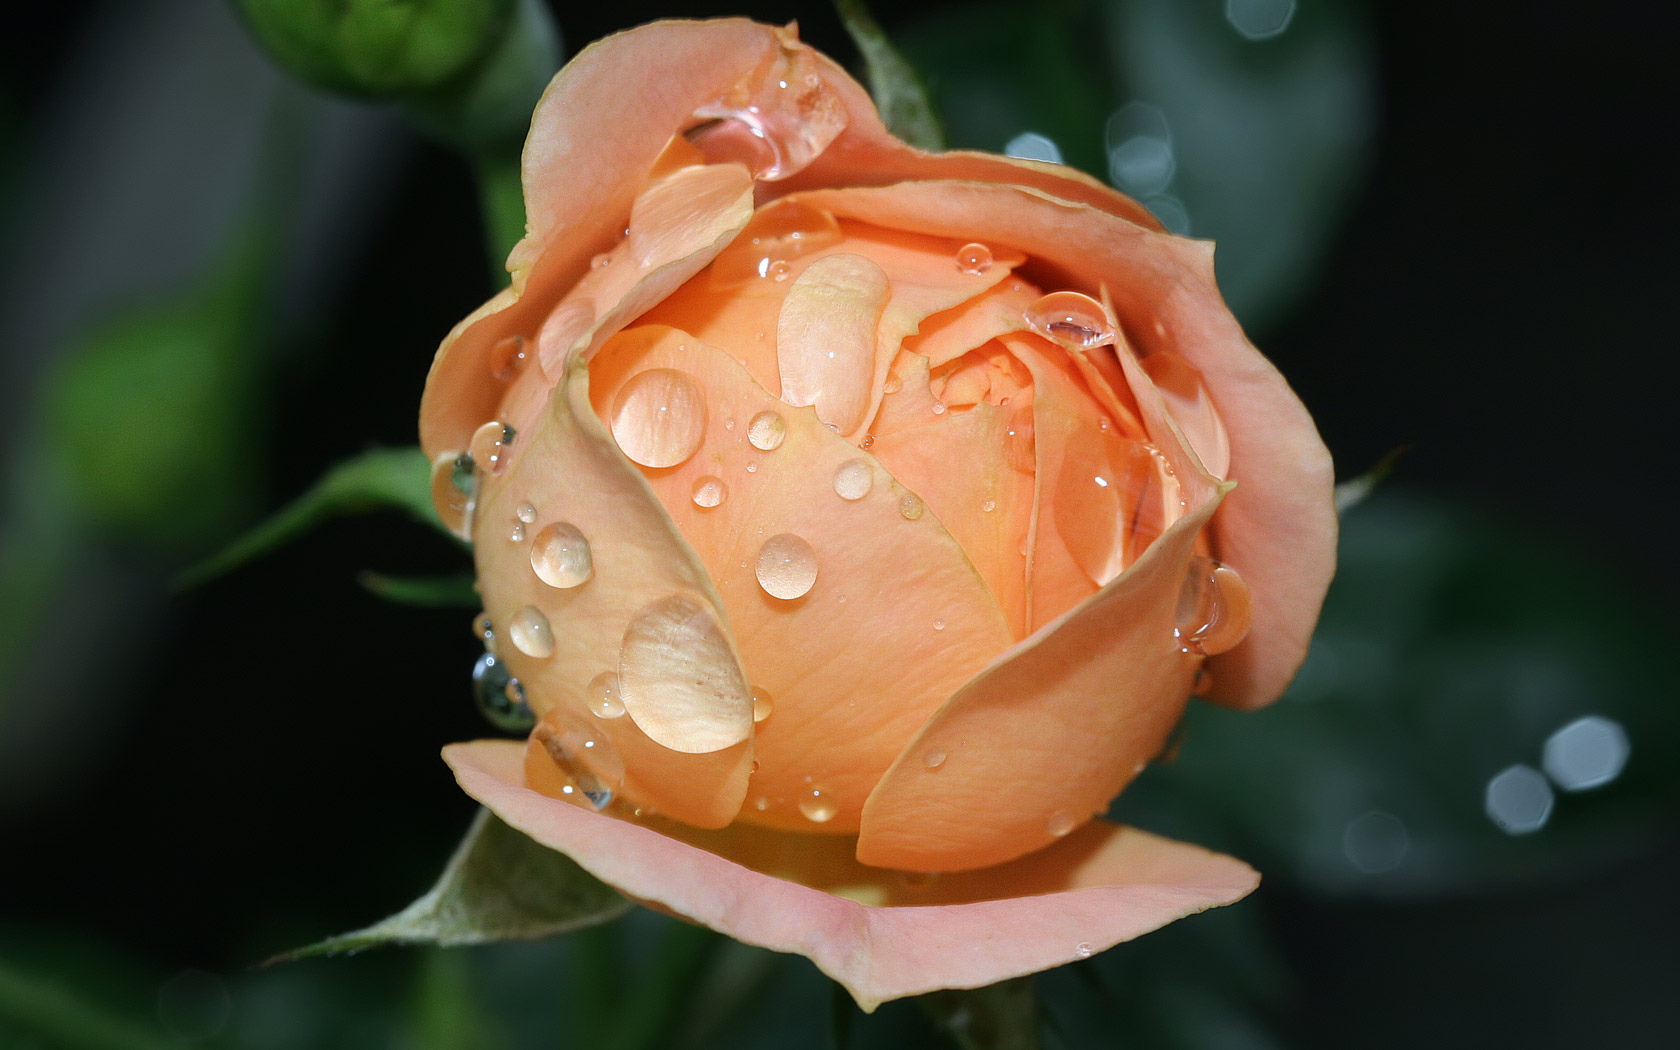 Wet Rose Bloom